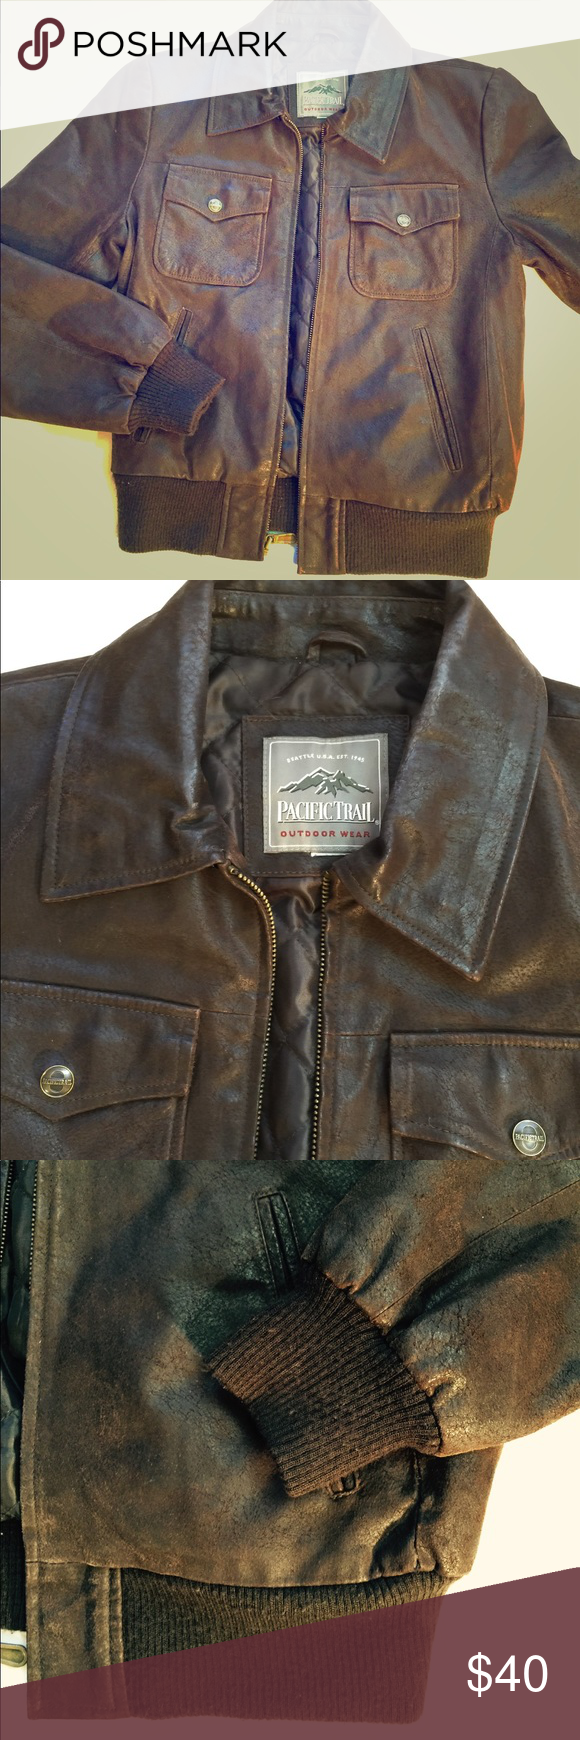 Pacific trail vintage leather bomber jacket size S Pacific